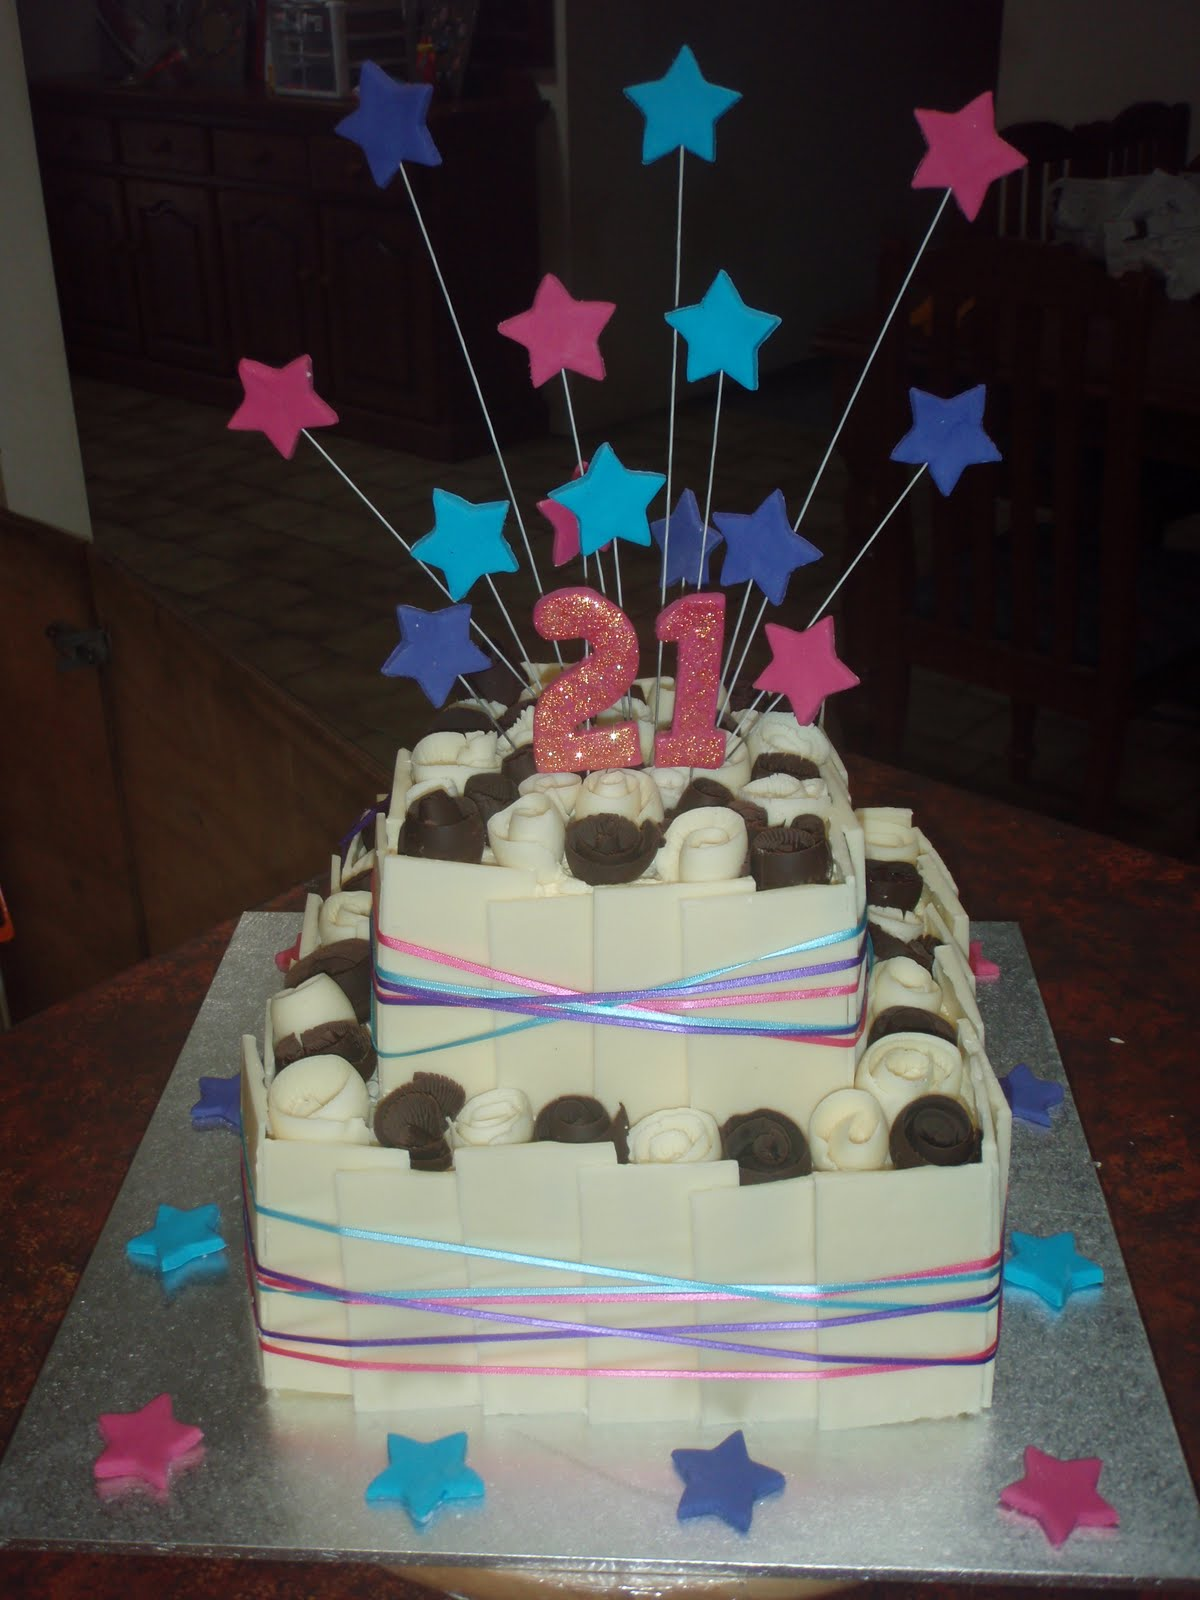 Cake decorating ideas for 21st birthday for 21st birthday cake decoration ideas